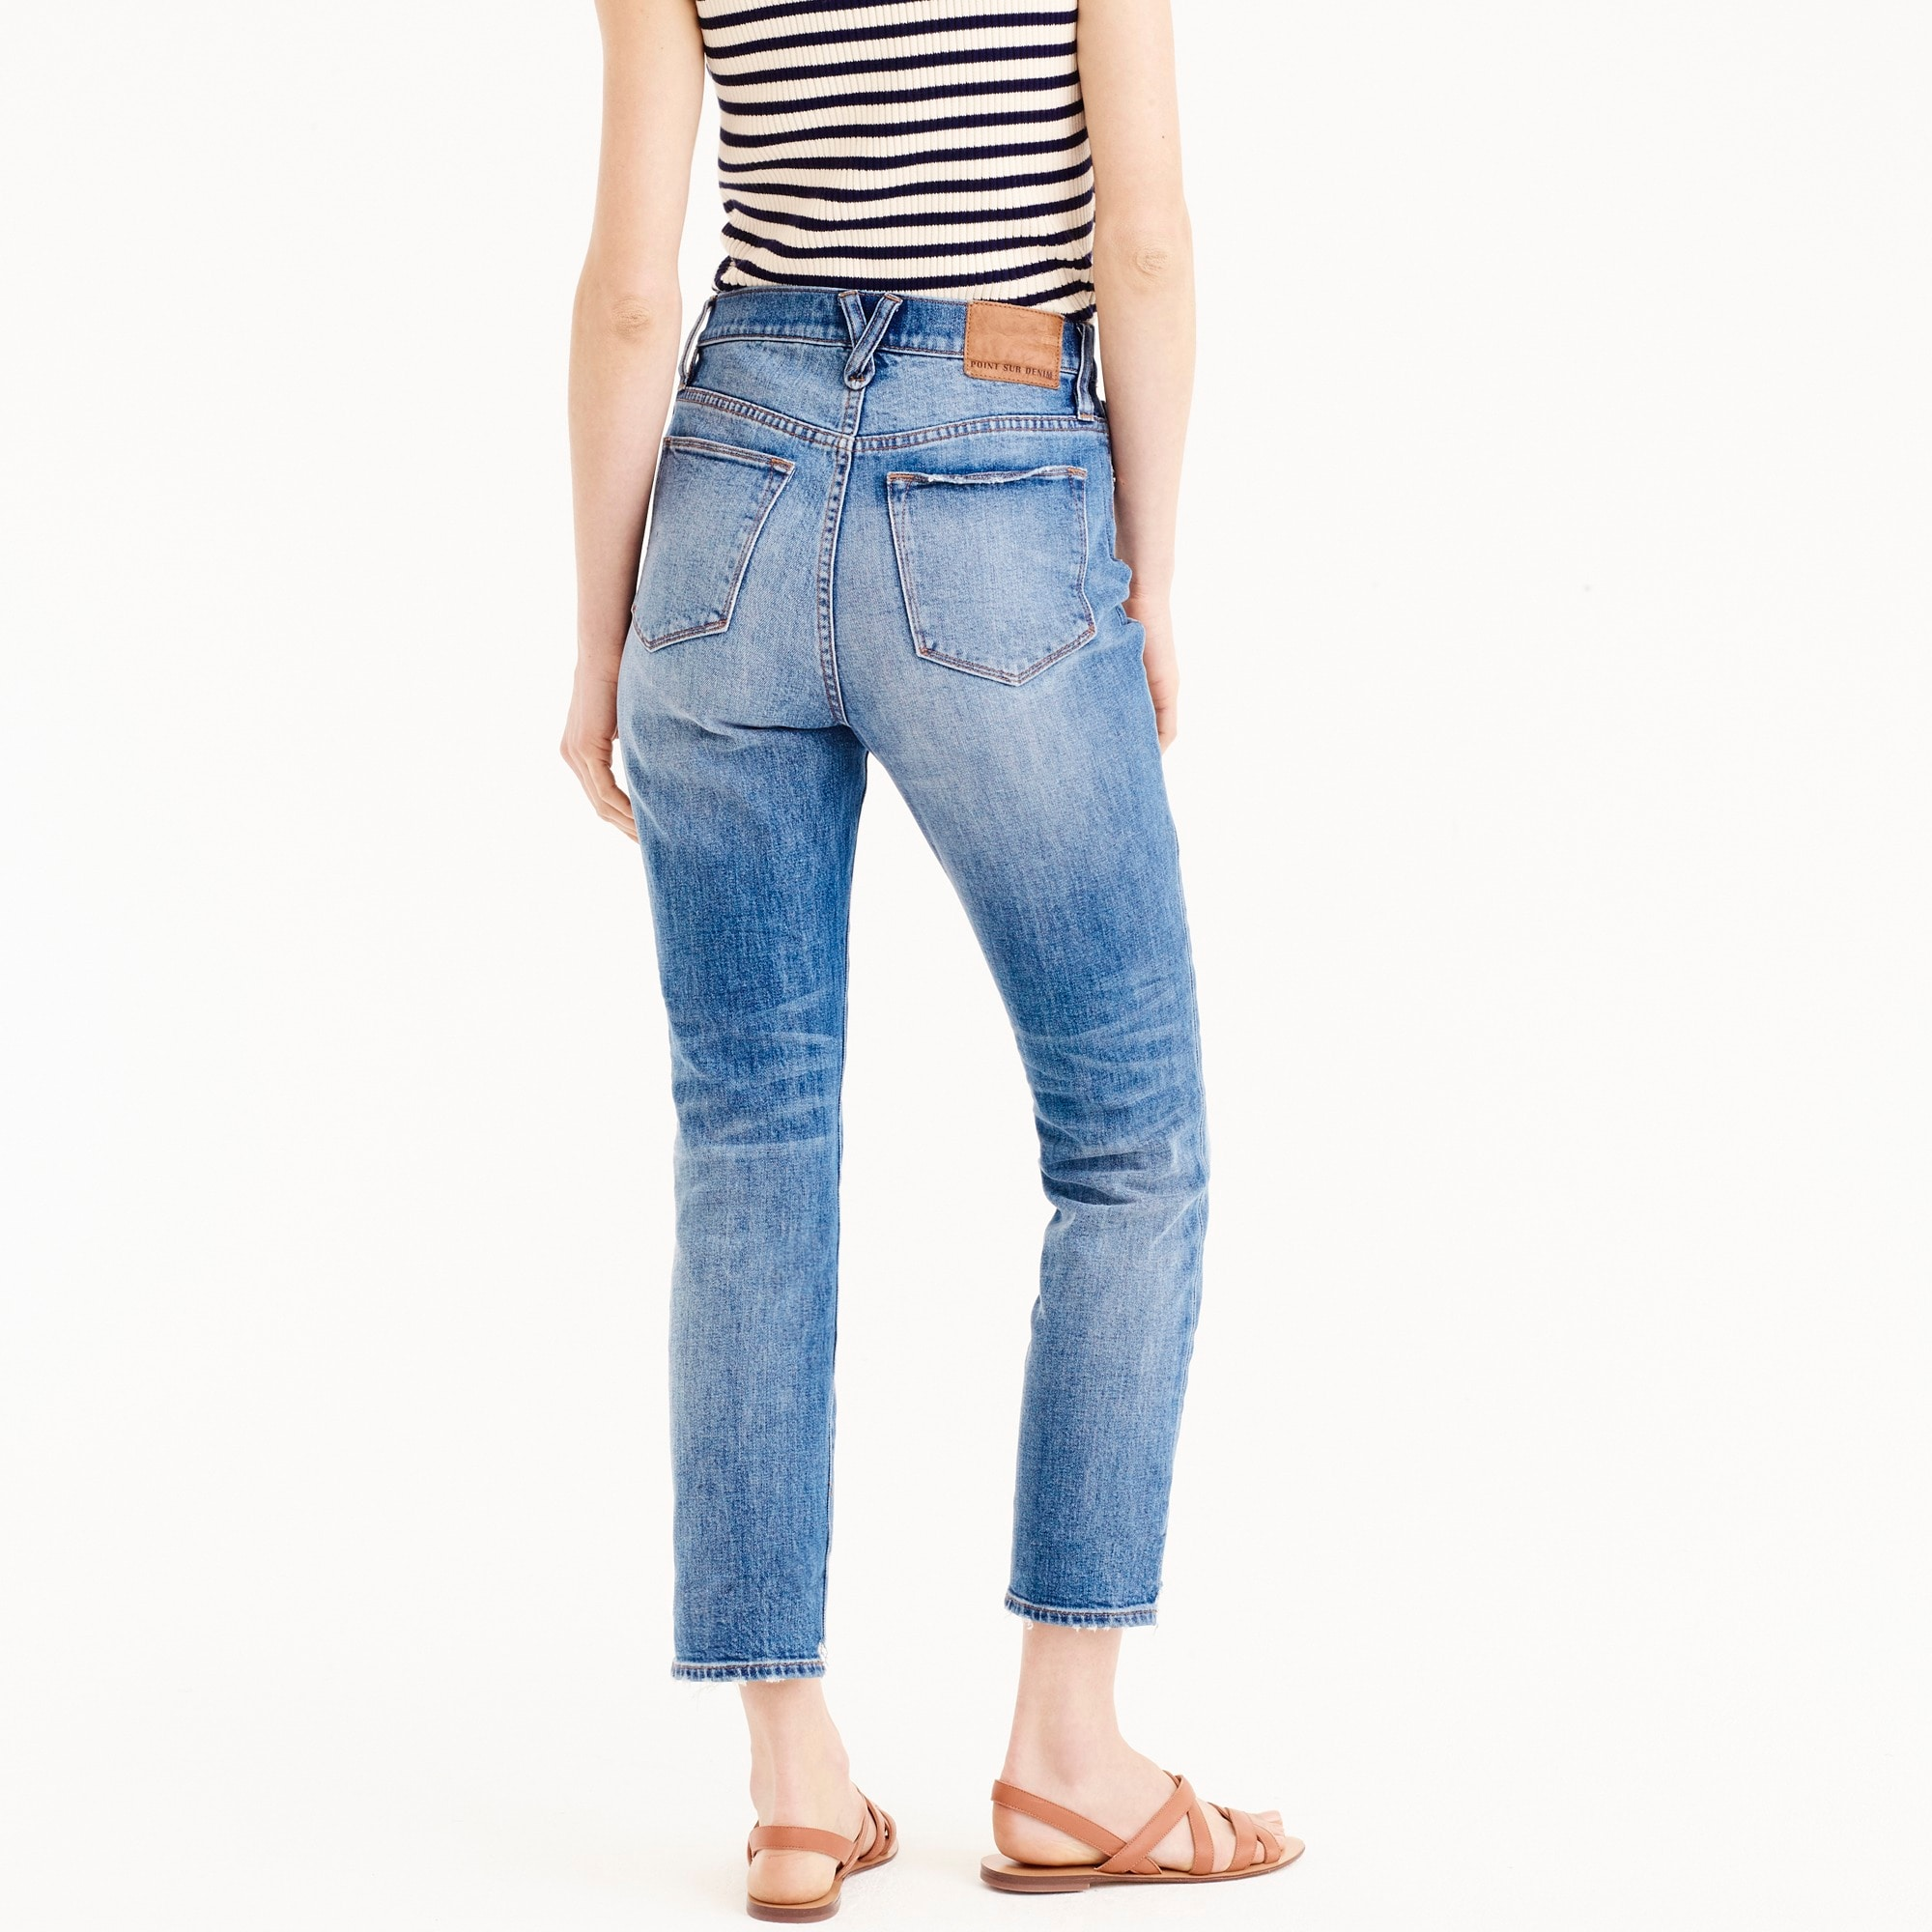 Image 4 for Point Sur high-rise boyfriend jean with uneven hems